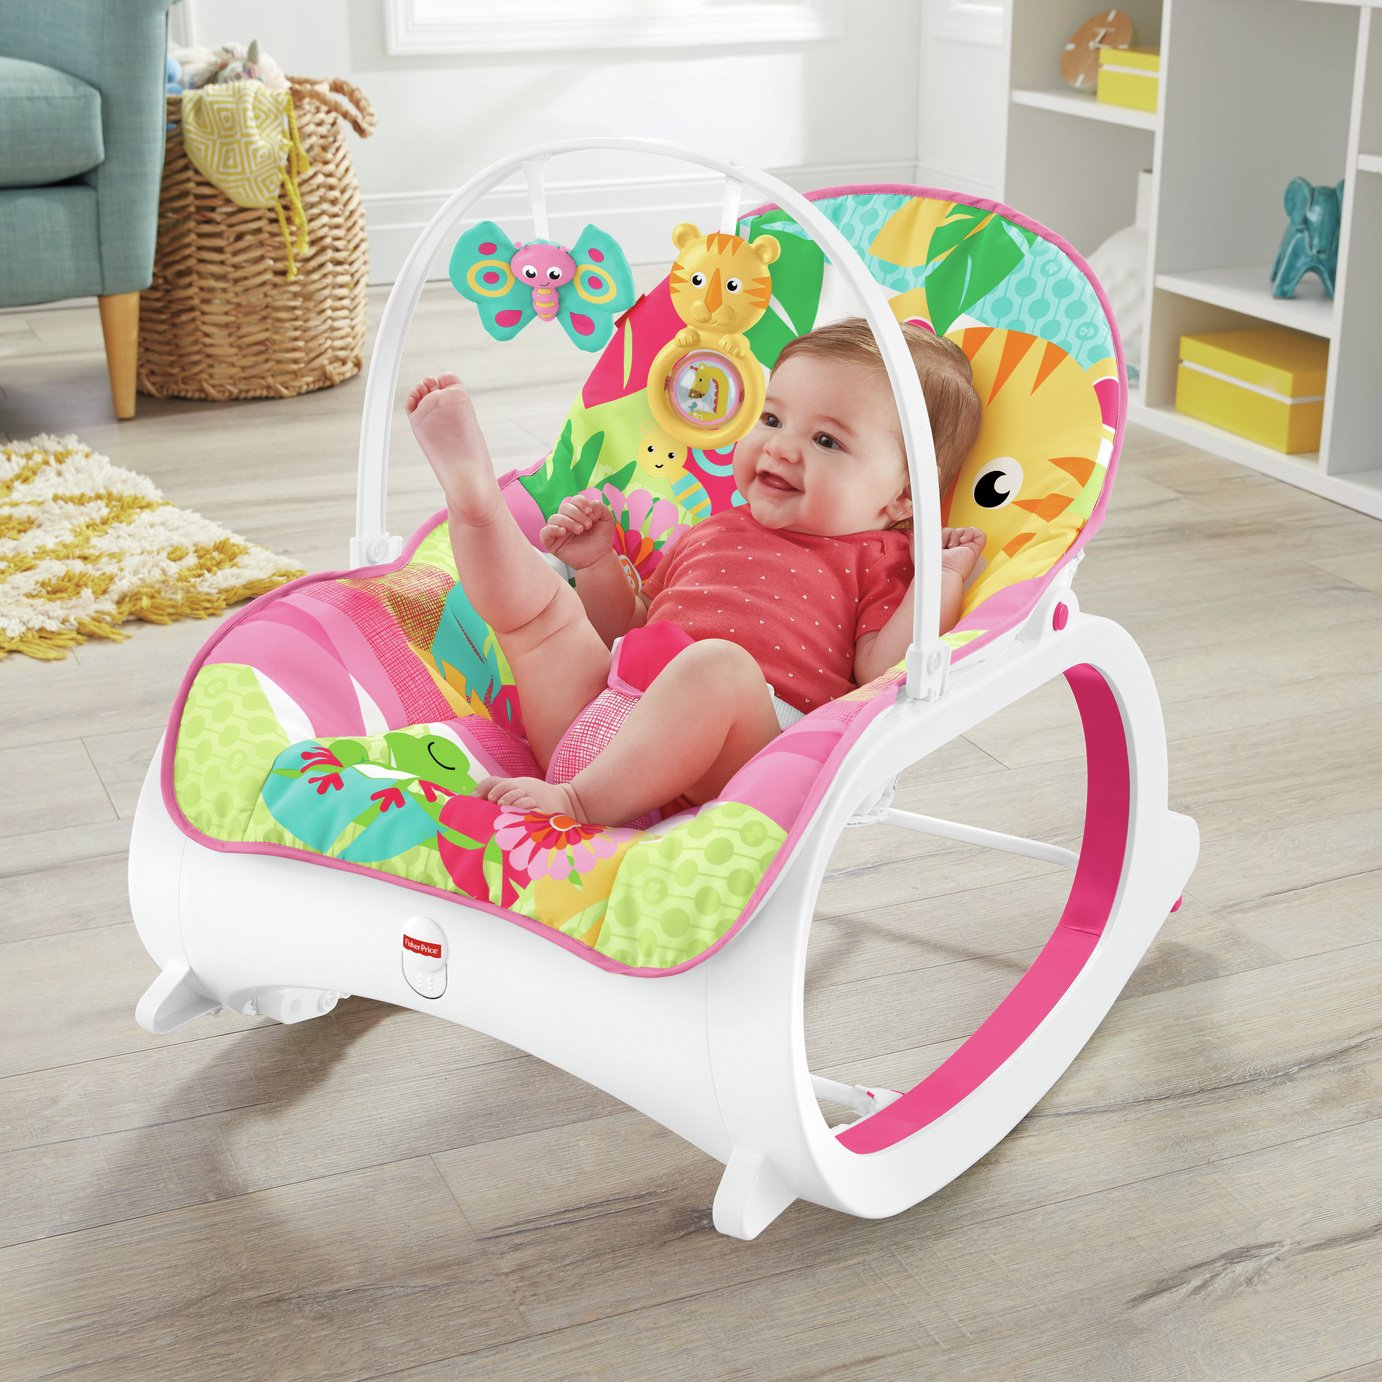 argos baby bouncer chair sling hanging swing bouncers page 1 price tracker